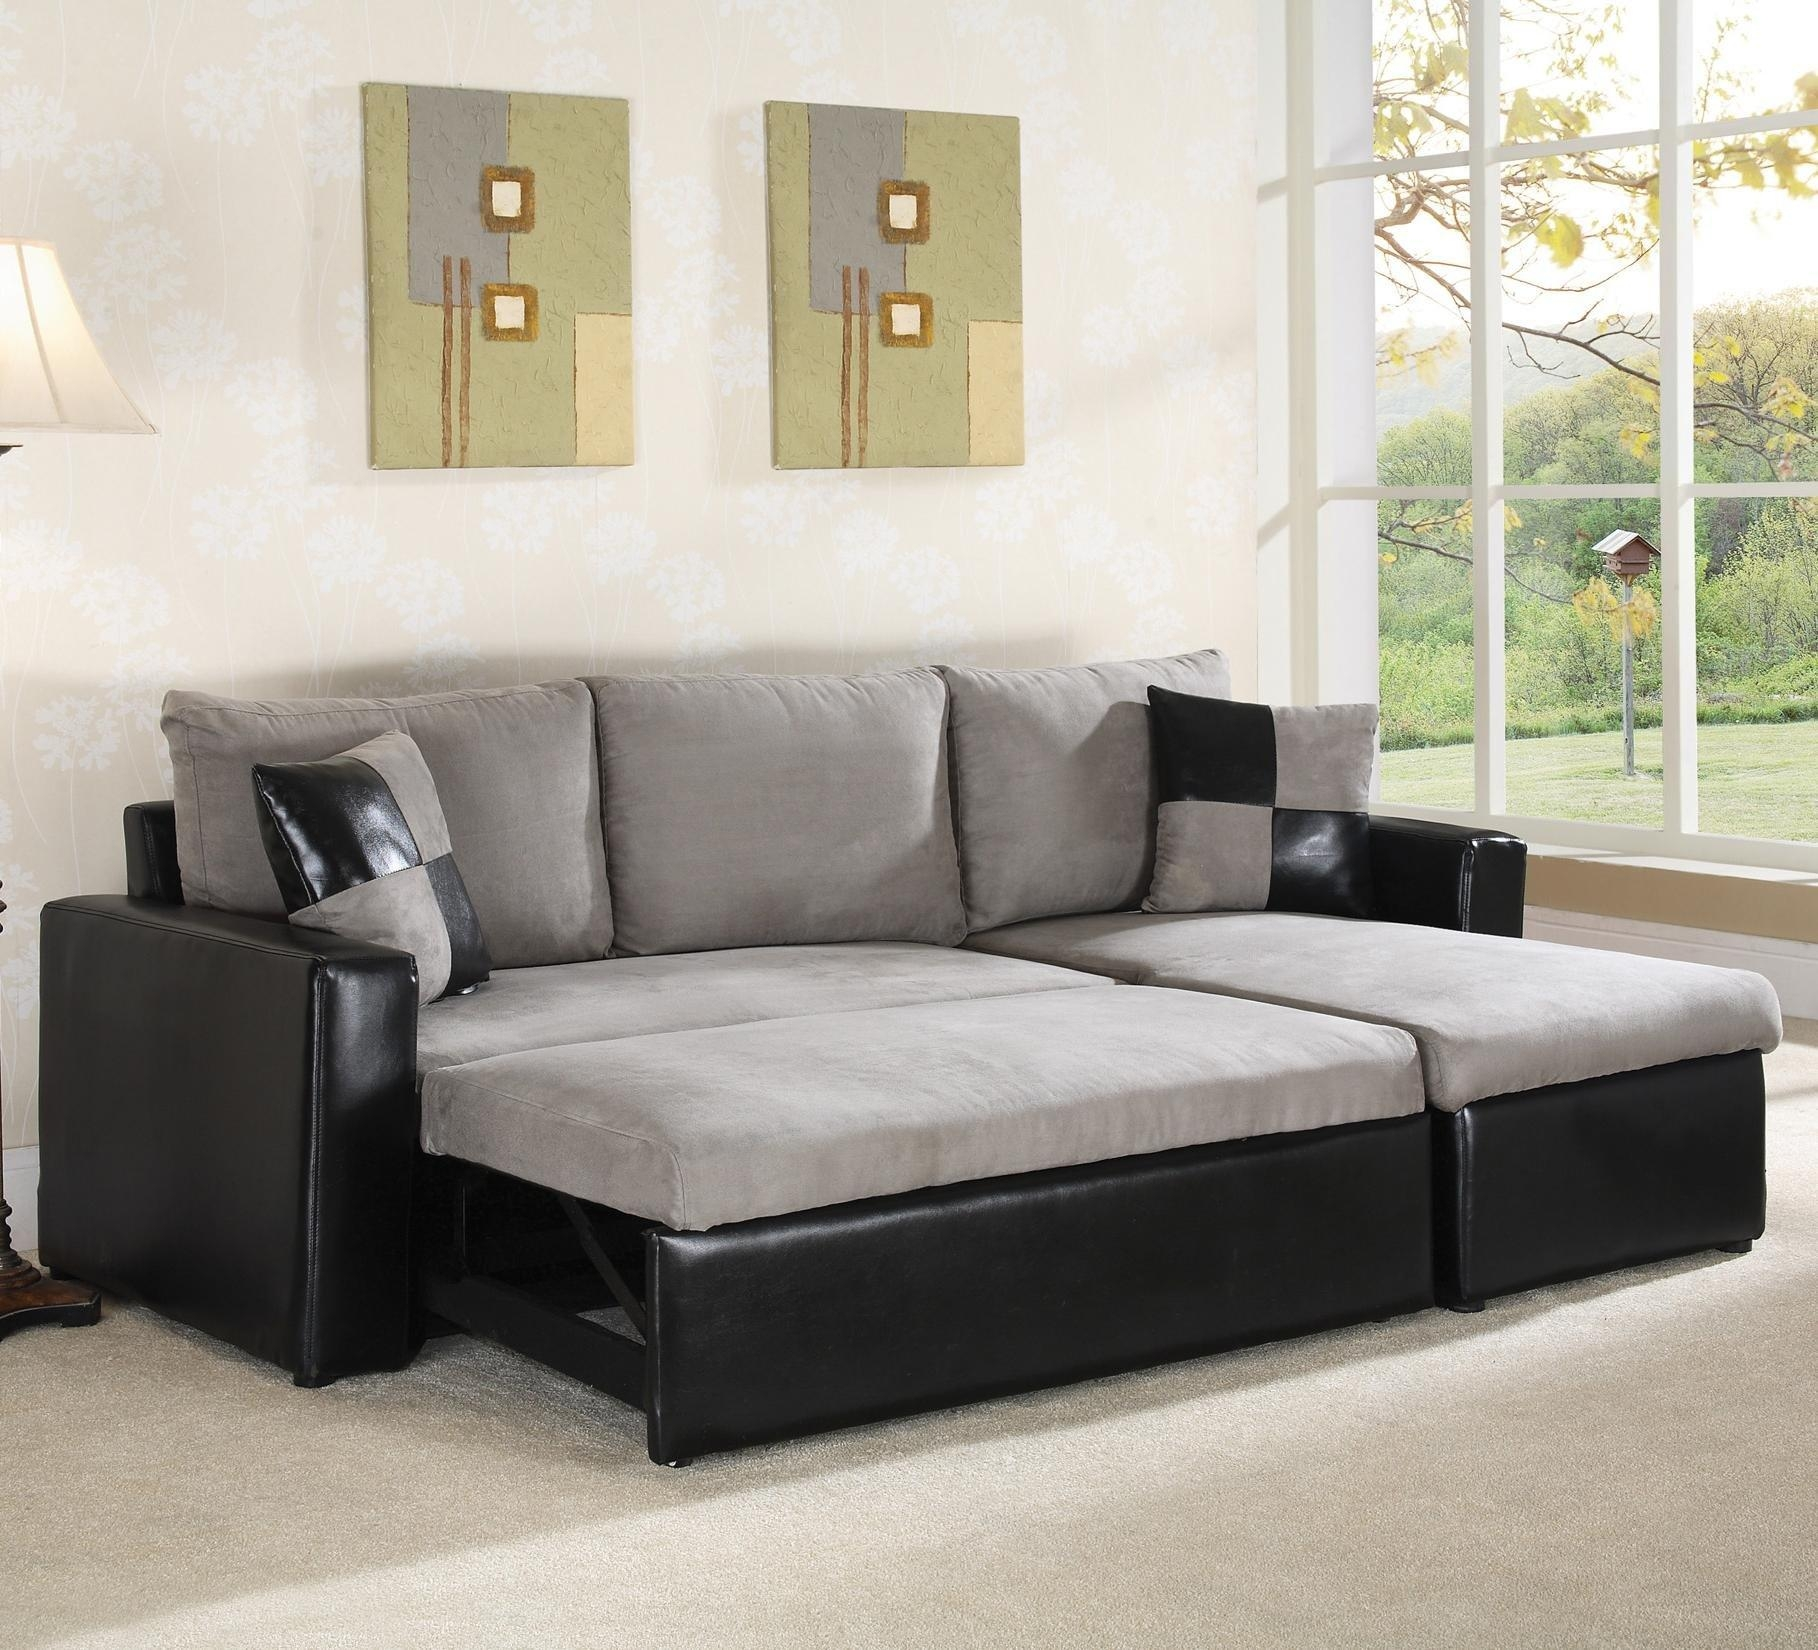 sleeper sofa black danish design bed 21 collection of leather sectional sofas